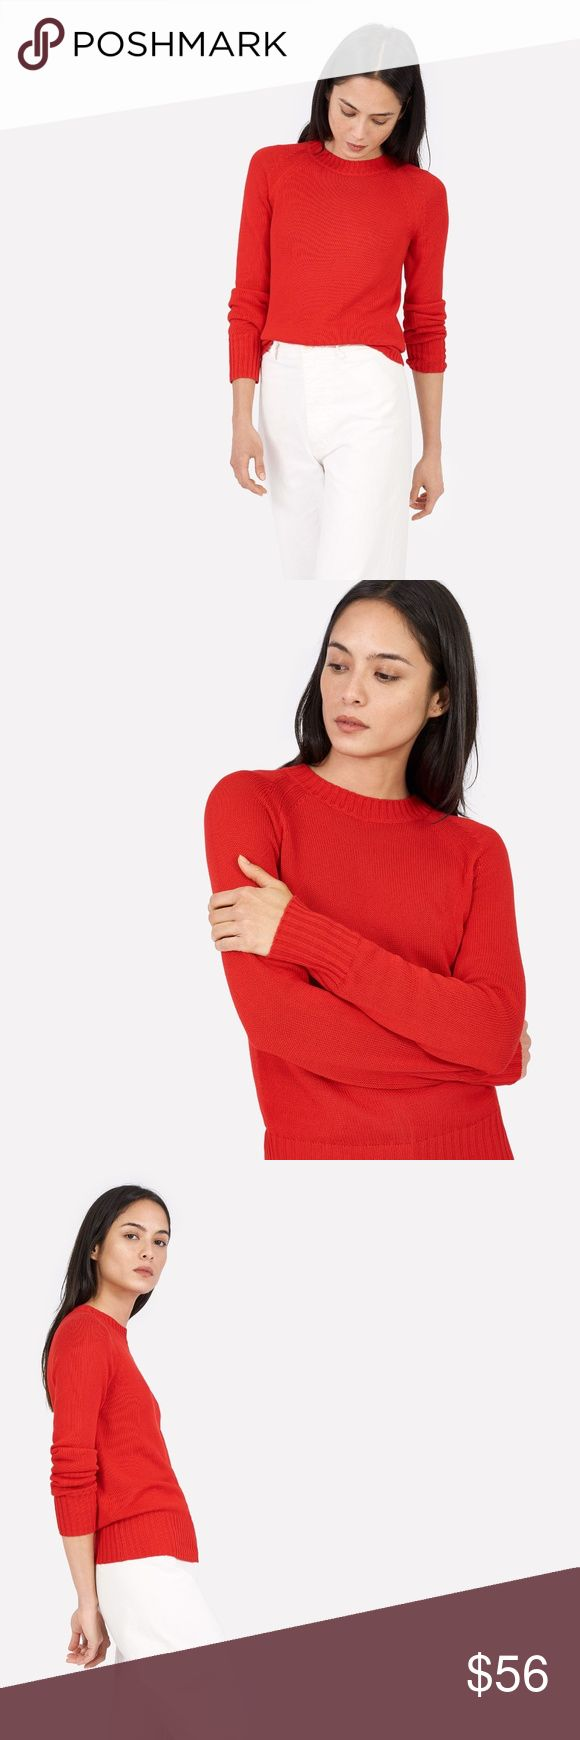 Everlane Red Open Knit Crew Sweater Size Small A crewneck sweater made in a substantial yet breathable knit that easily transitions from warm days to cool nights. It features rib trims at the collar, hem and cuffs.  Relaxed fit  Measurements: 32 inch bust, 23.5 inch overall length  Material: 55% cotton, 45% viscose  Hand wash cold, lay flat to dry  Made in Dongguan, China Everlane Sweaters Crew & Scoop Necks